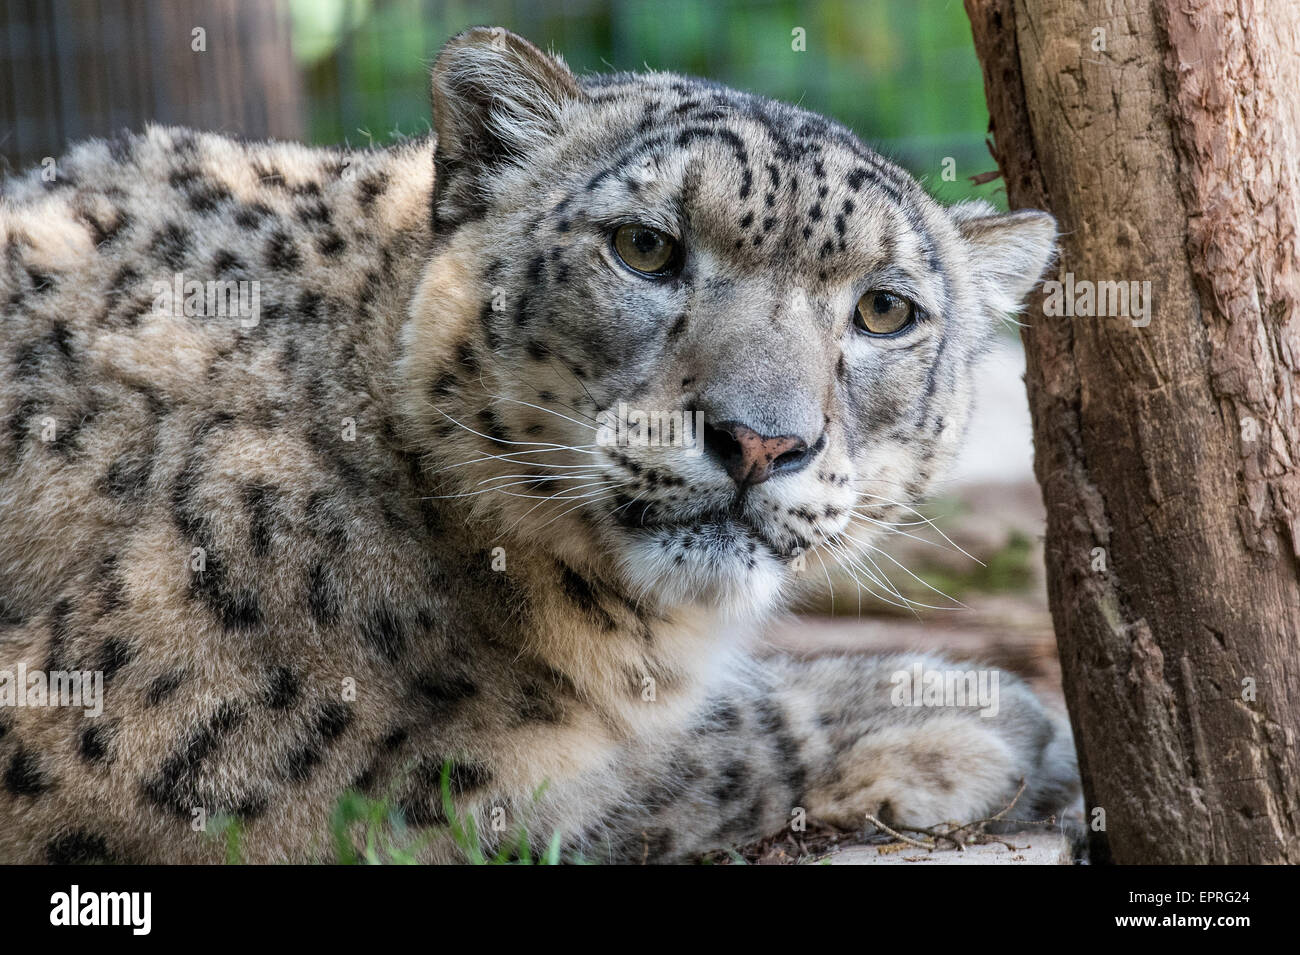 A snow leopard can be seen at zookeeper Renato Rafael's Felidae Wildcat Center in Sydower Fliess, Germany, 21 - Stock Image